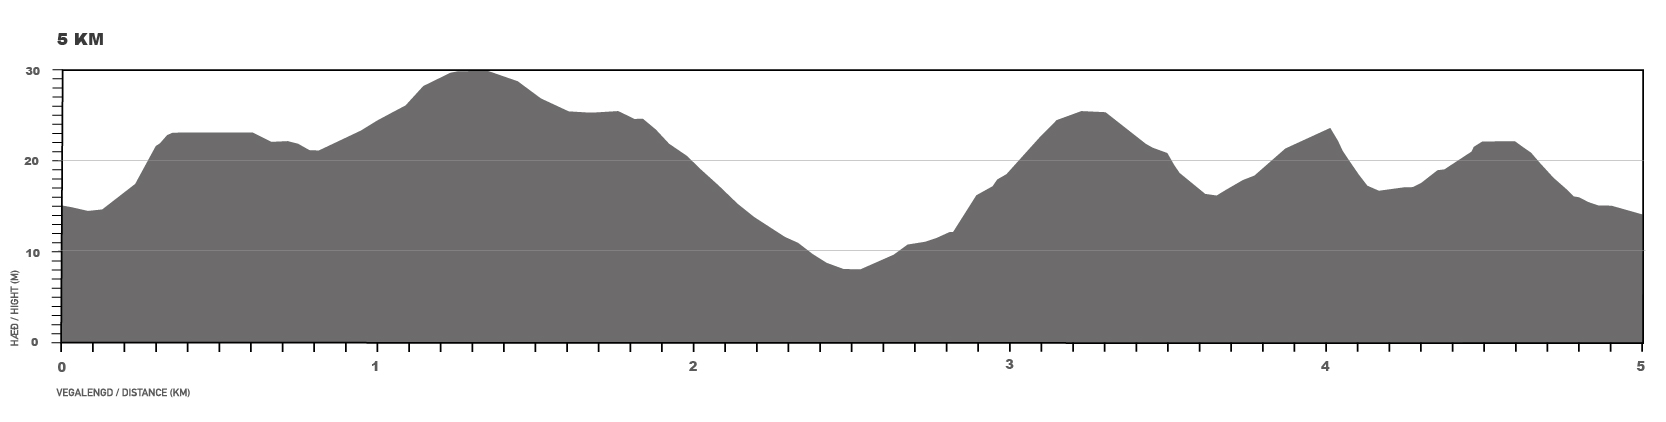 Elevation map for the 5 km race.